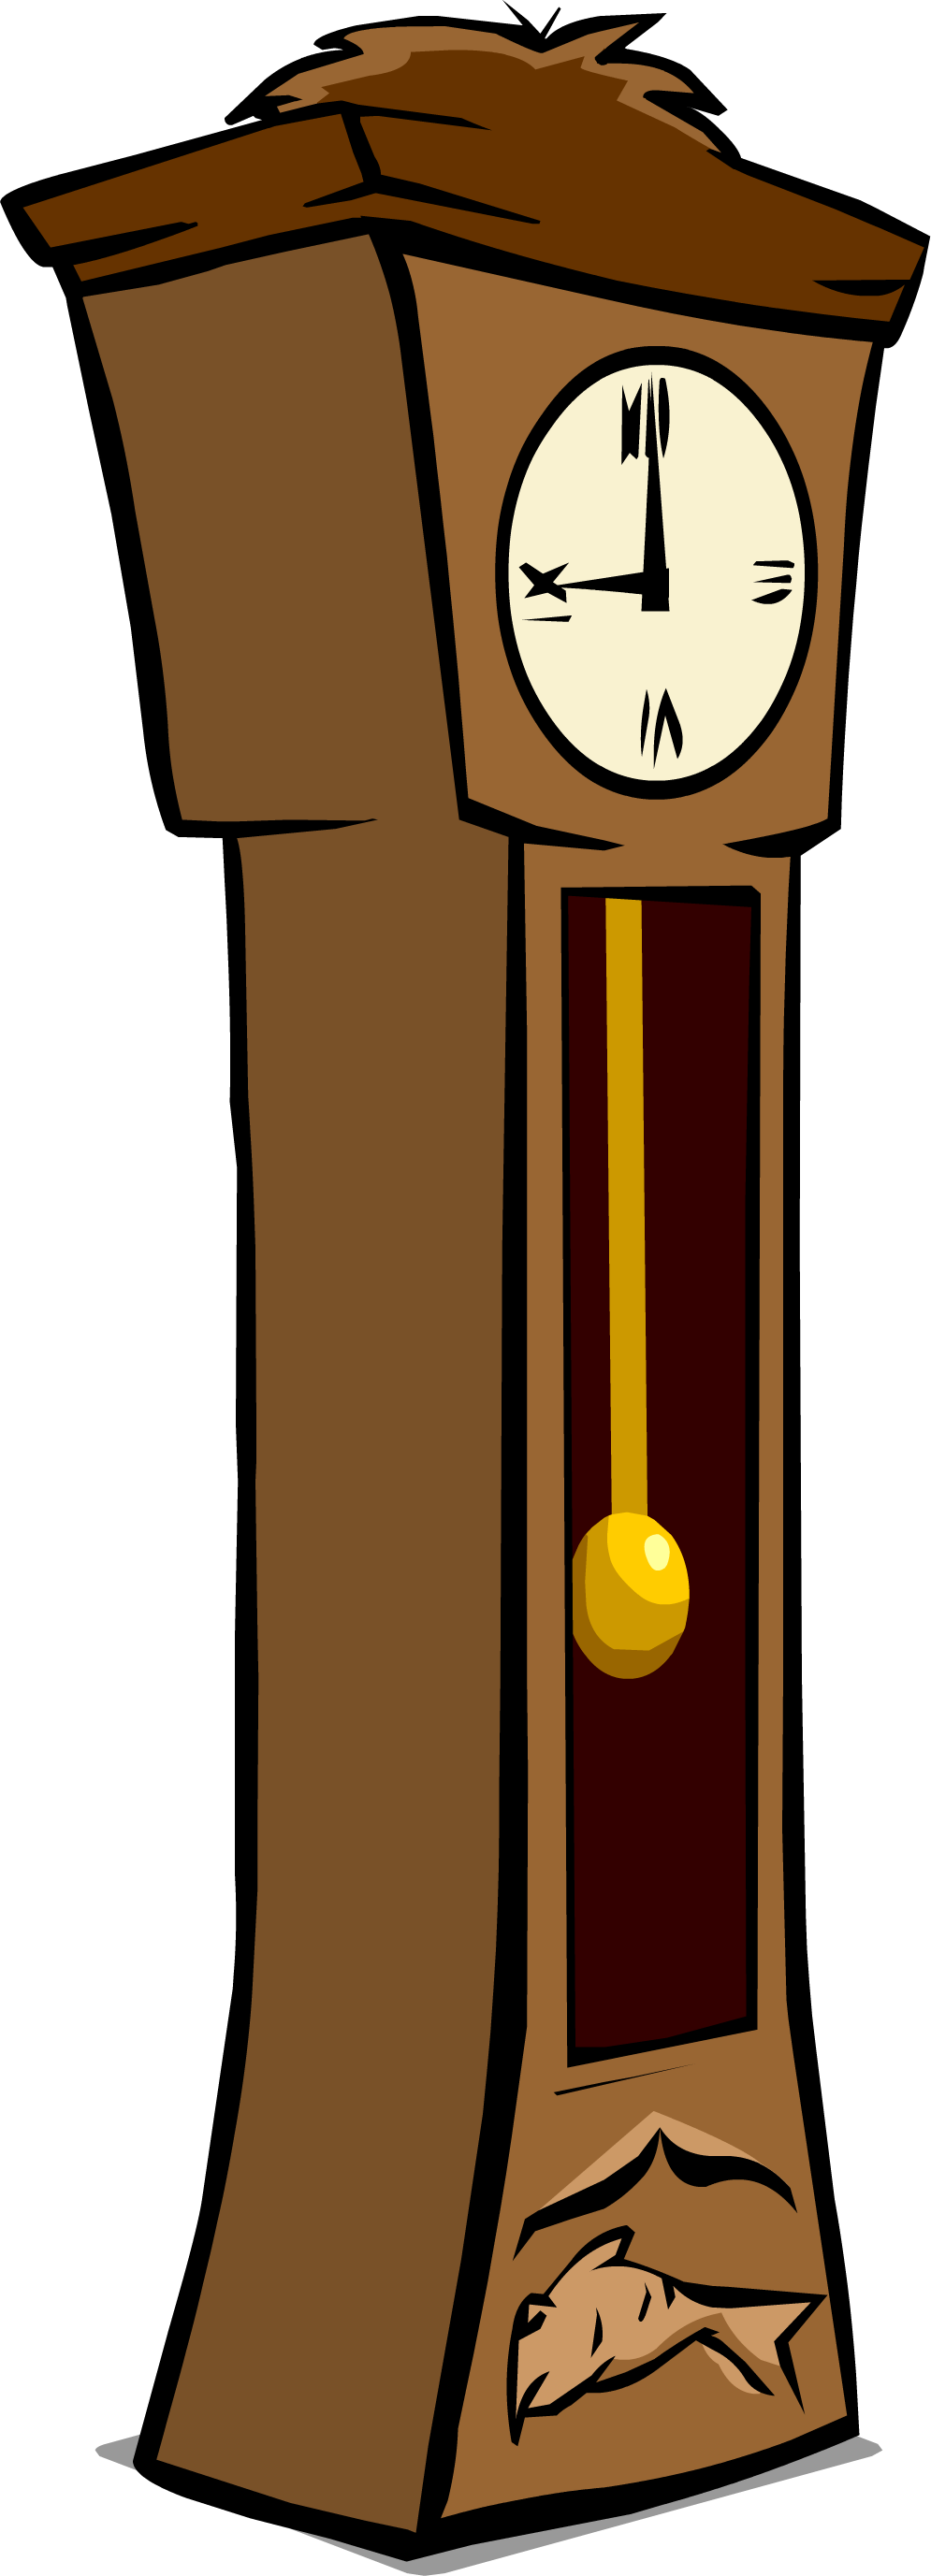 image grandfather clock sprite 003 png club penguin wiki rh clubpenguin wikia com grandfather clock pendulum clipart grandfather clock pendulum clipart